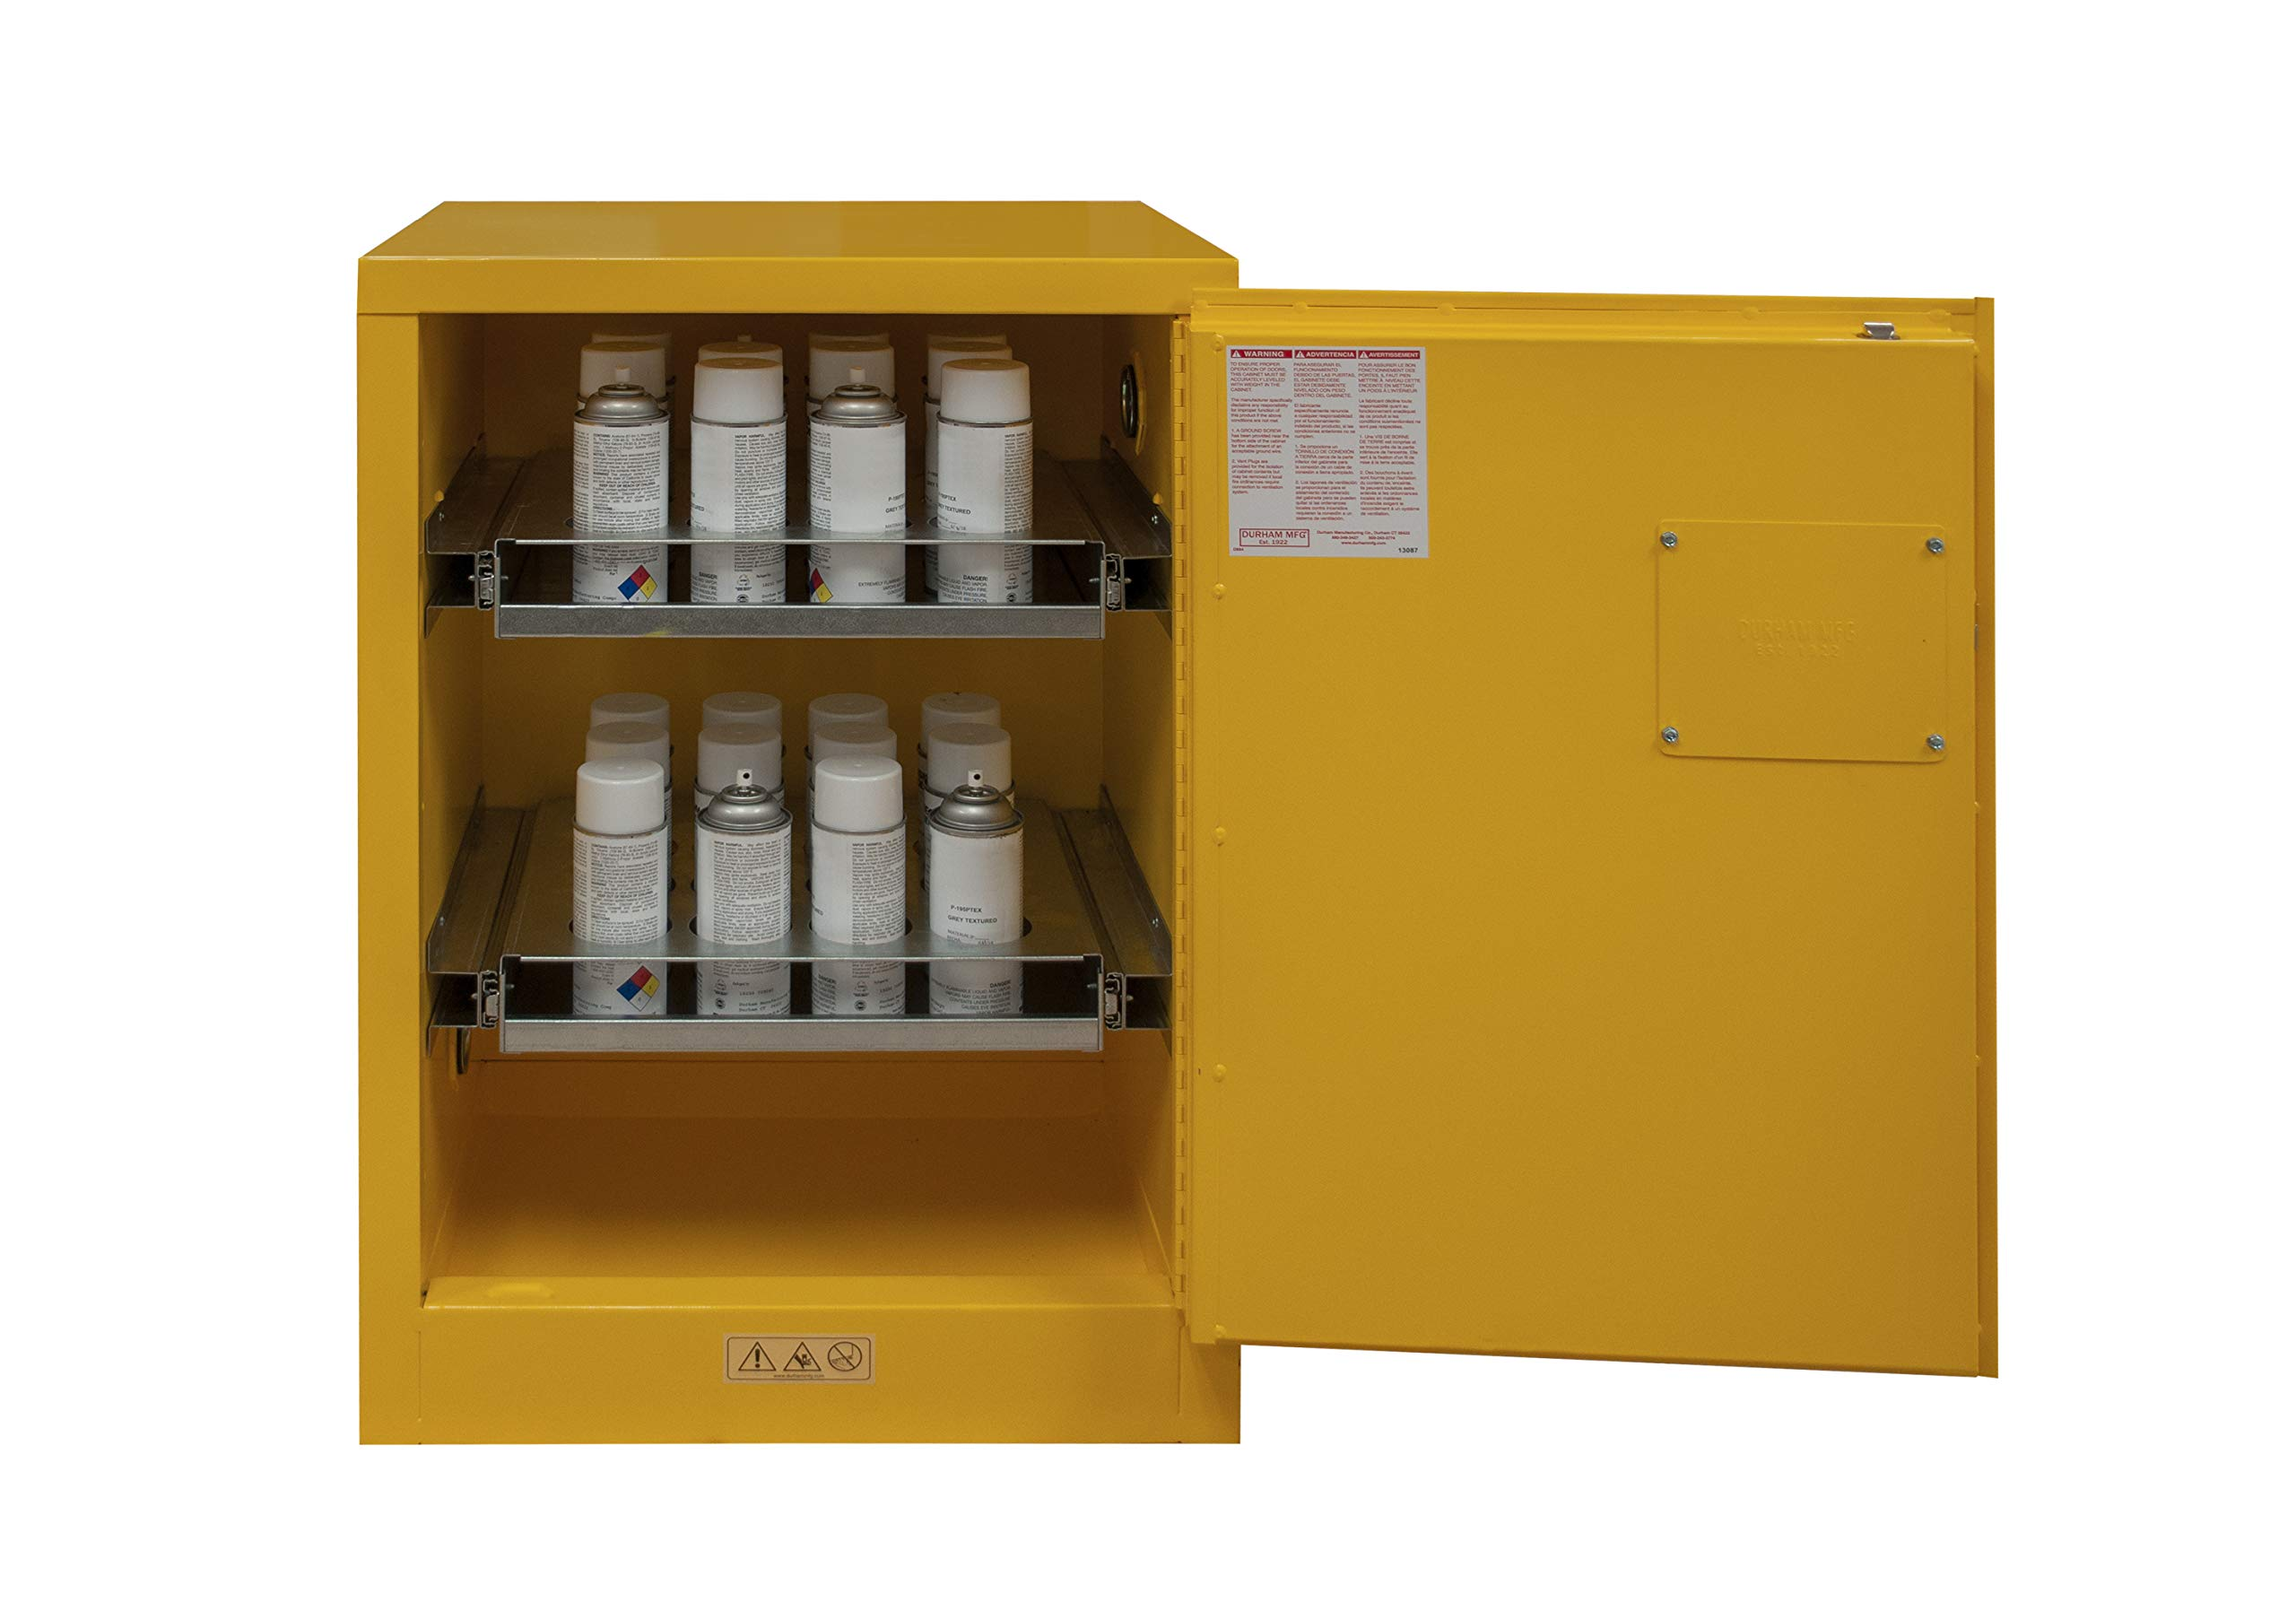 Durham 1012MA-50 Flammable Storage, 24 cans, Manual by Durham